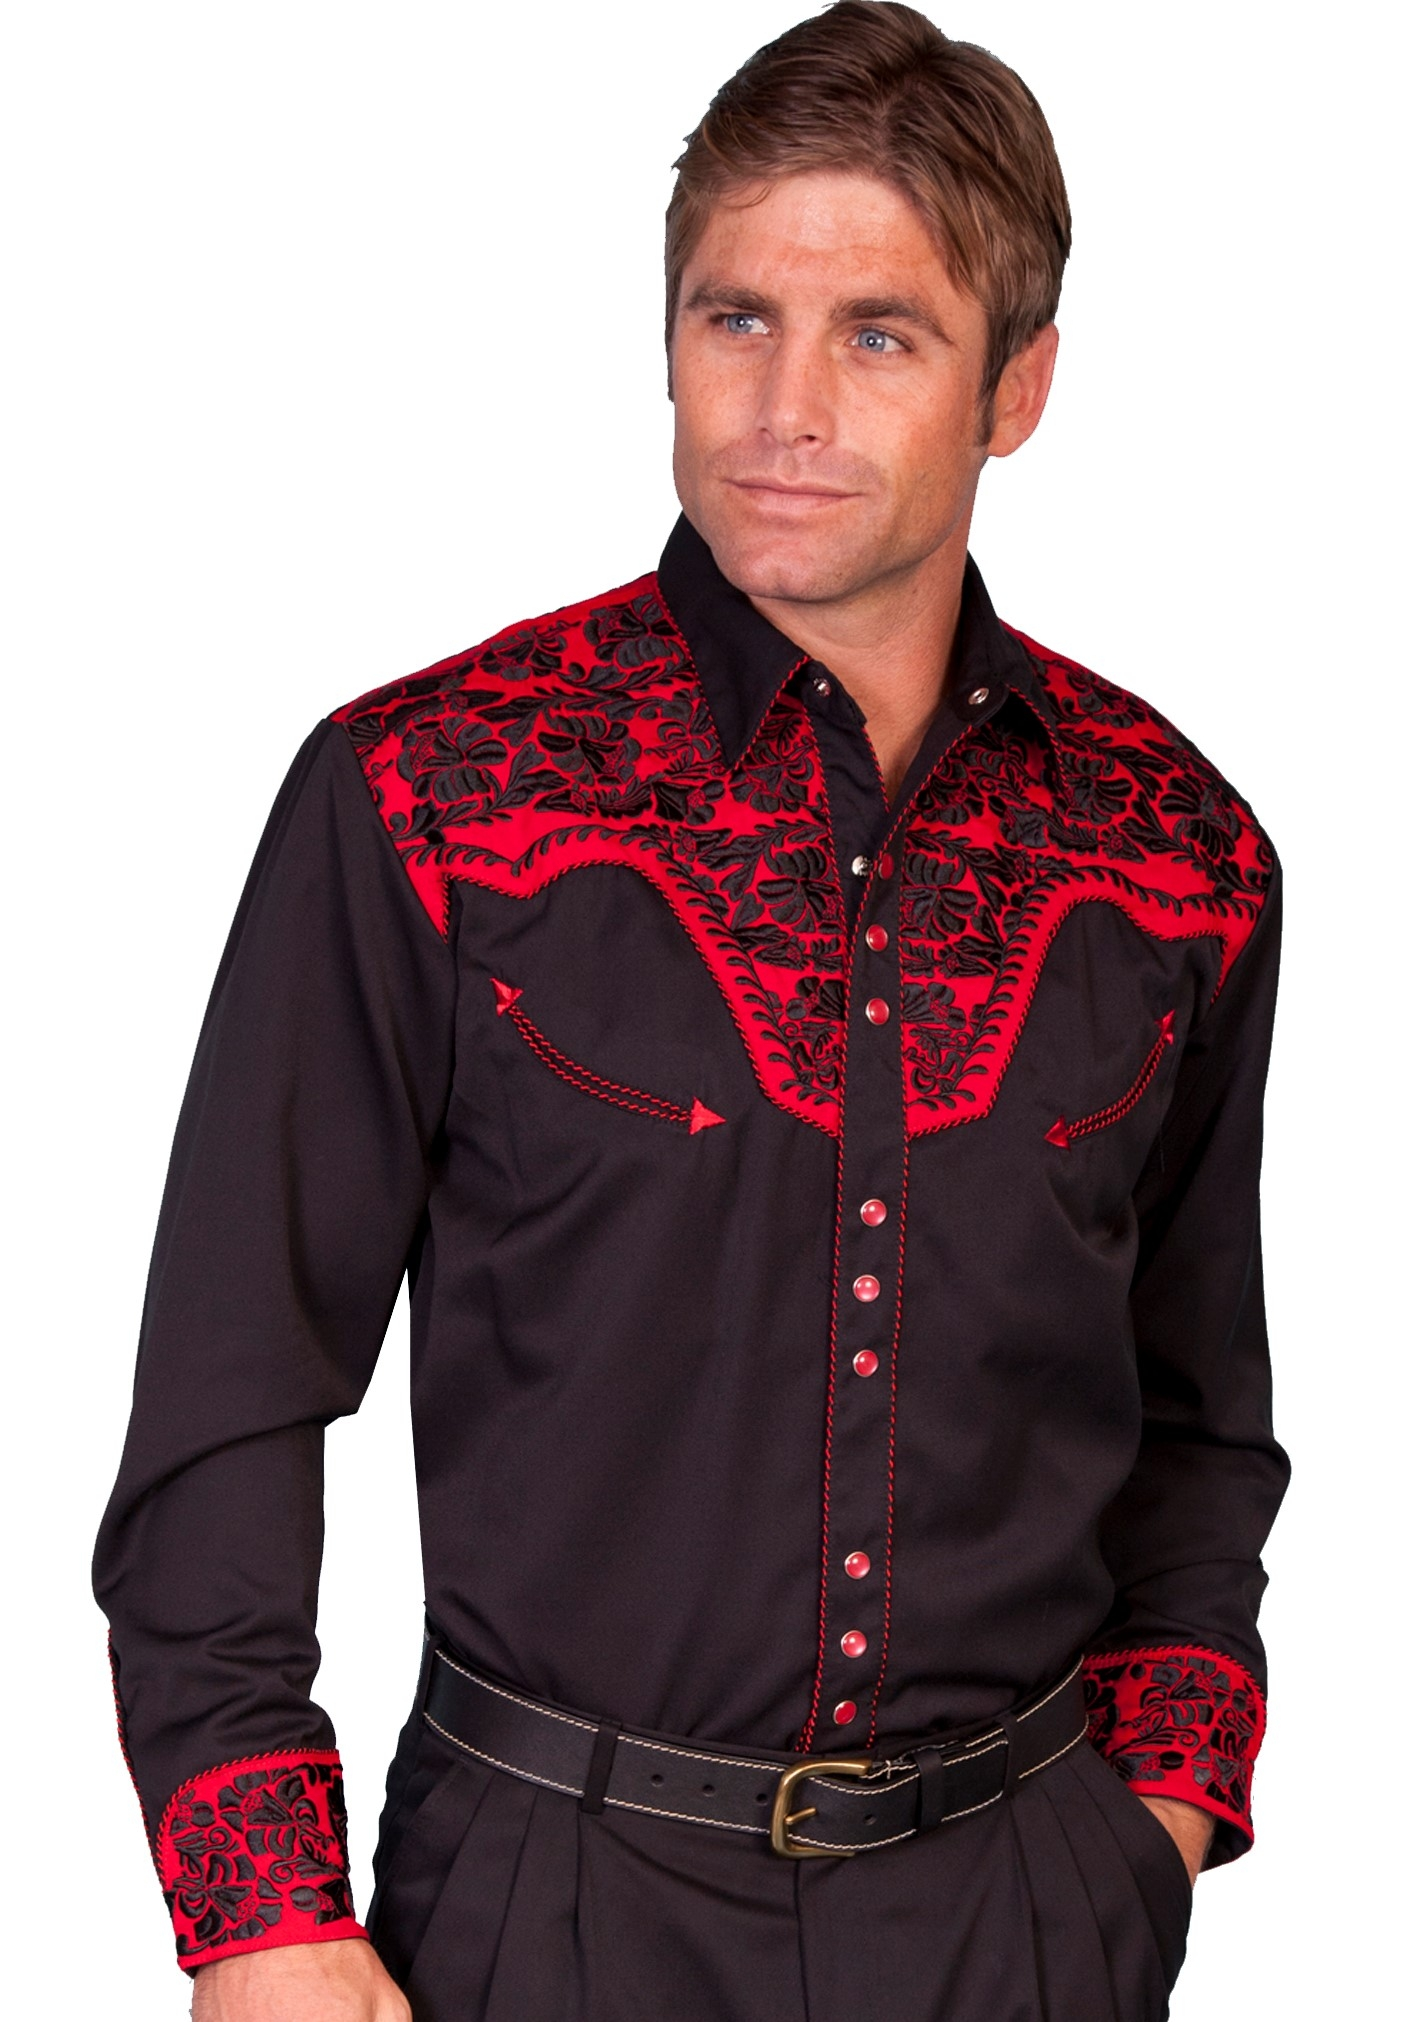 Black Western Shirt A black Western or cowboy shirt goes with everything. What we like about black is that is represents strength and power, but it can also be a formal, elegant, and prestigious color to wear.